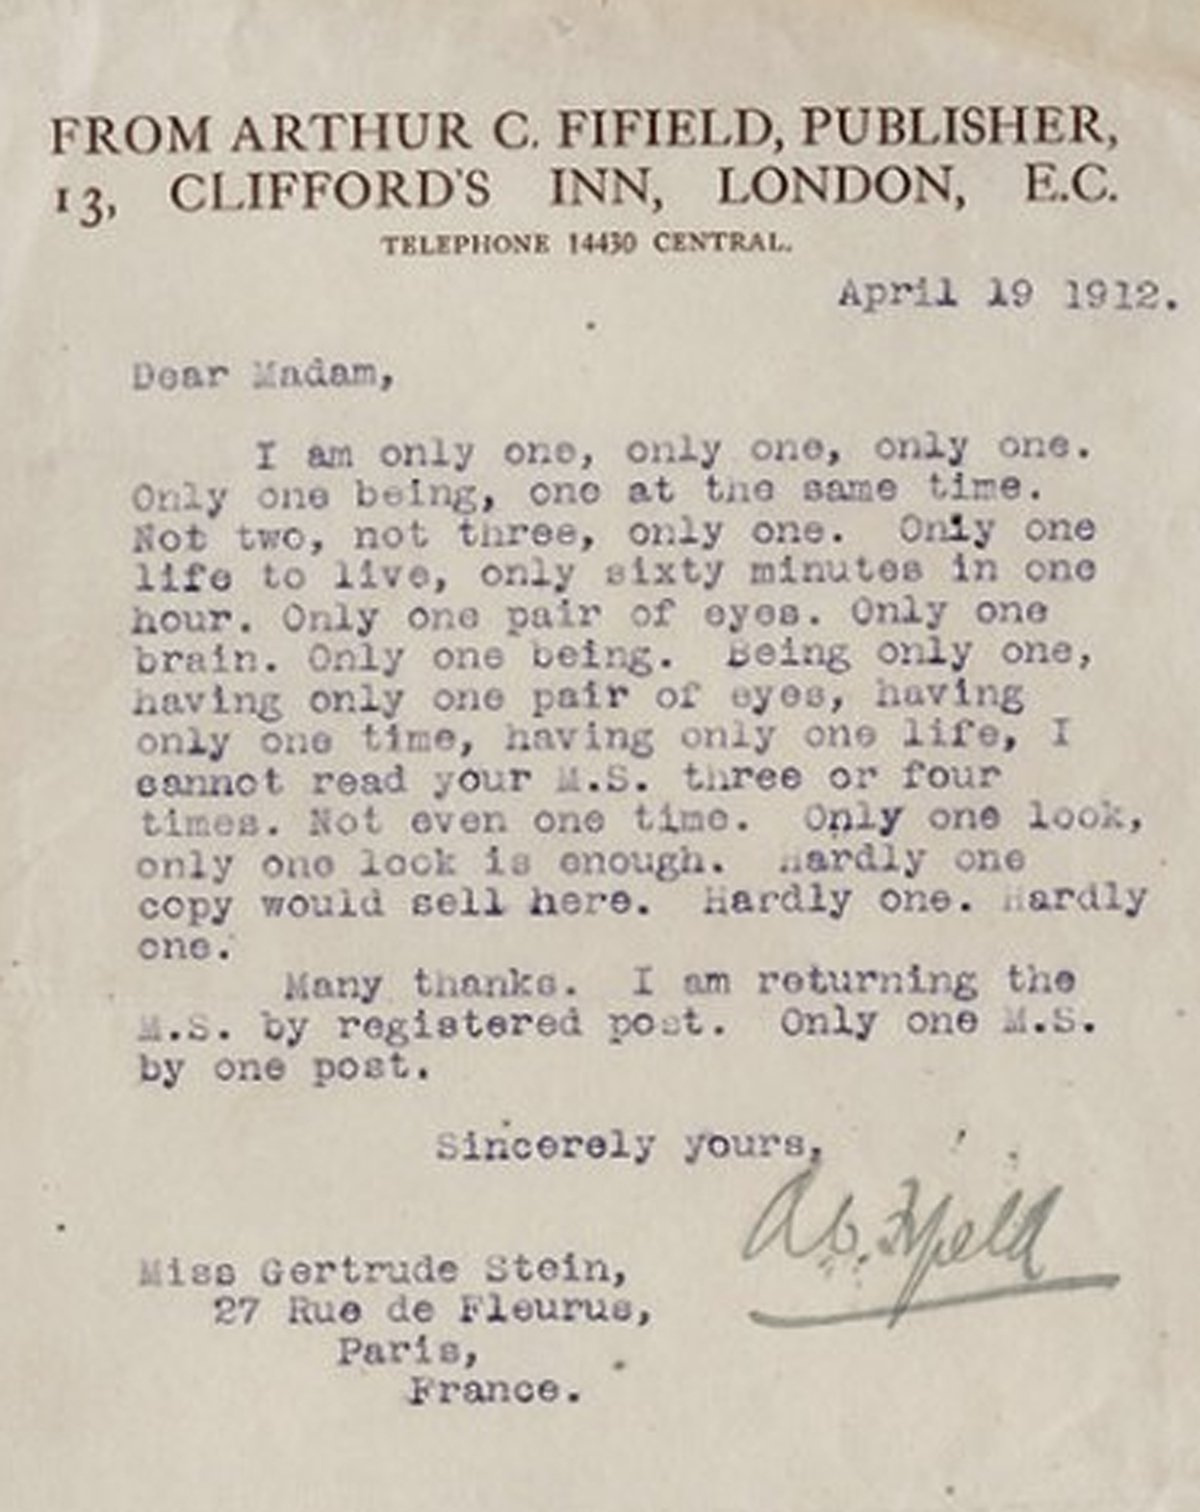 """Gertrude Stein's rejection letter to an anonymous submitter. It's vintage Stein: """"Hardly one copy would sell here. Hardly one. Hardly one."""" From   Letters of Note Volume 2  ."""